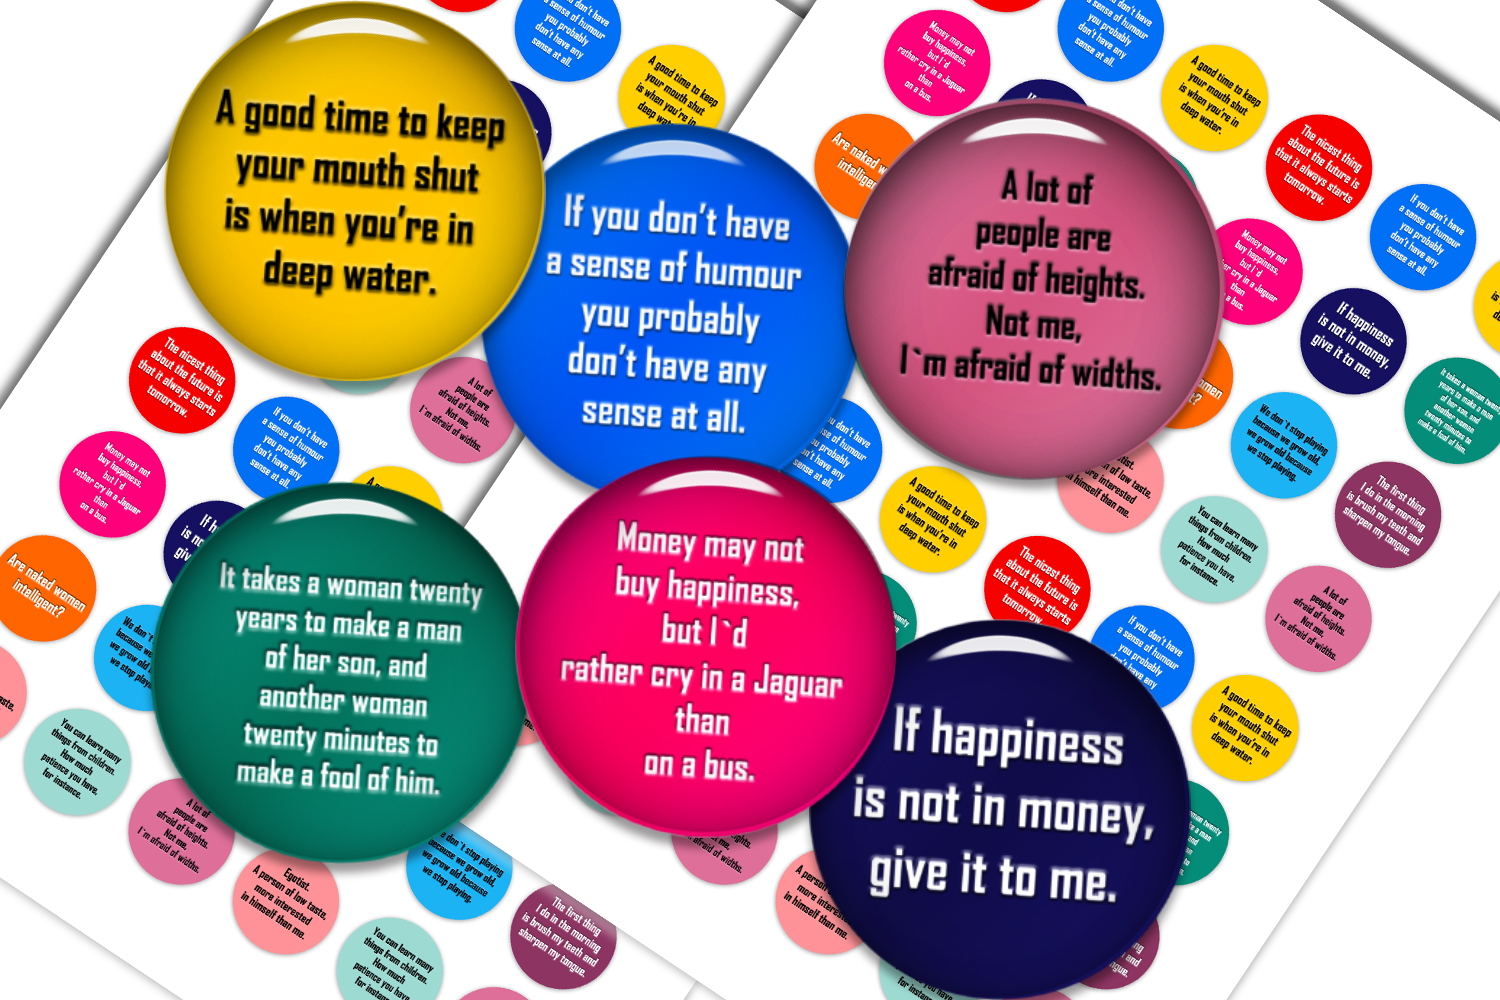 Download Free Aphorisms Digital Collage Sheet Graphic By Denysdigitalshop for Cricut Explore, Silhouette and other cutting machines.